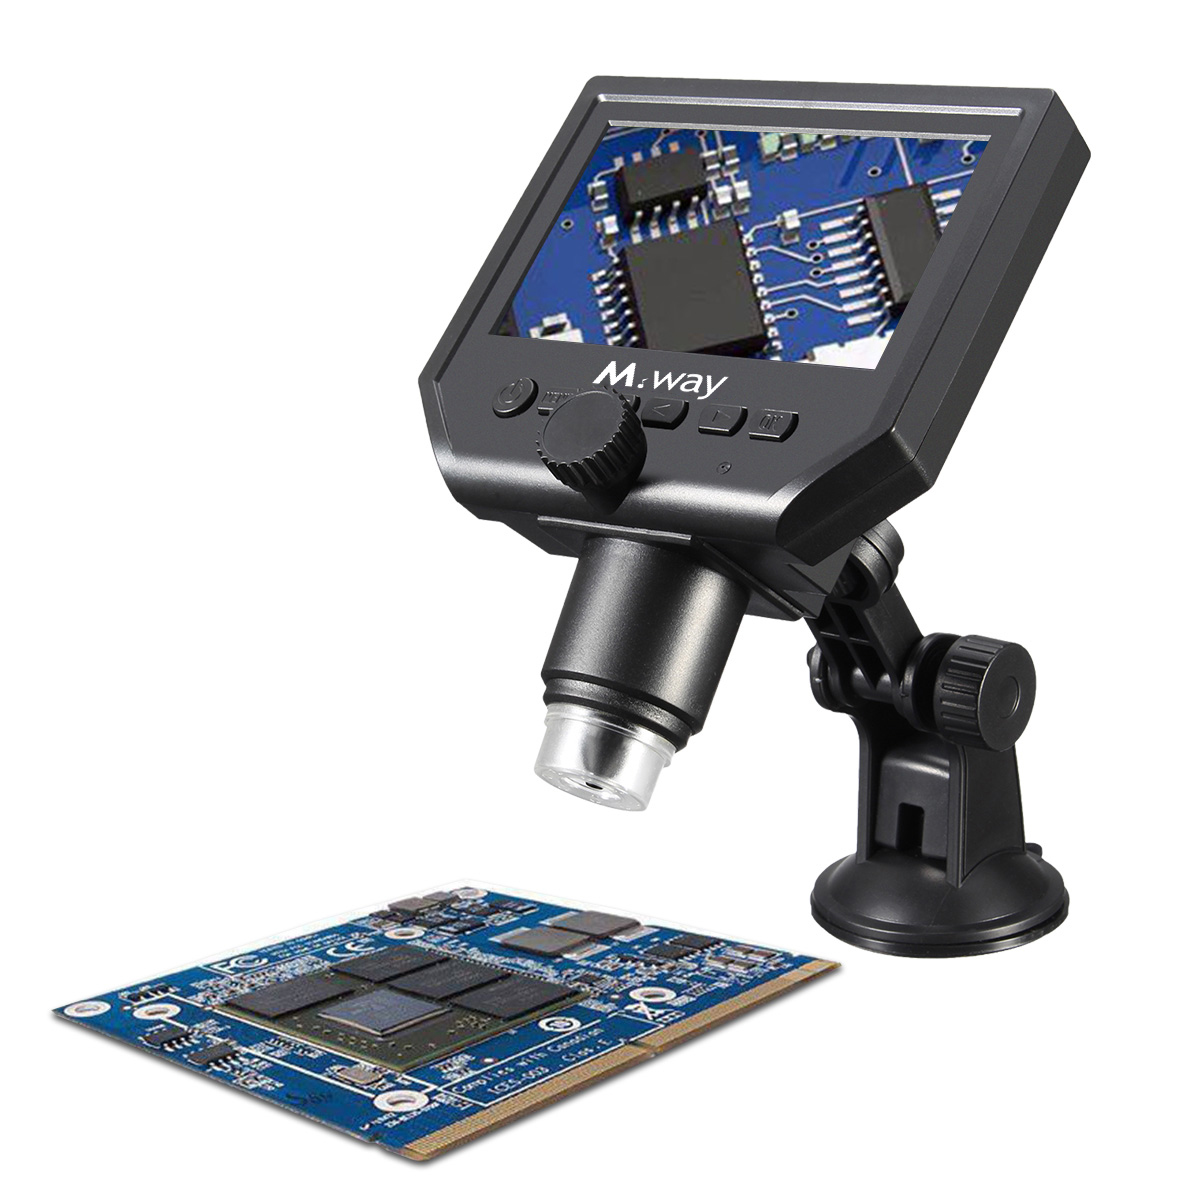 MWAY Portable Digital Microscope 3.6MP 600x Sensor Zoom LCD kit with1080P/720P/VGA Stereo Camera Vedio Microscope for QC/Industrial/Collection Inspect